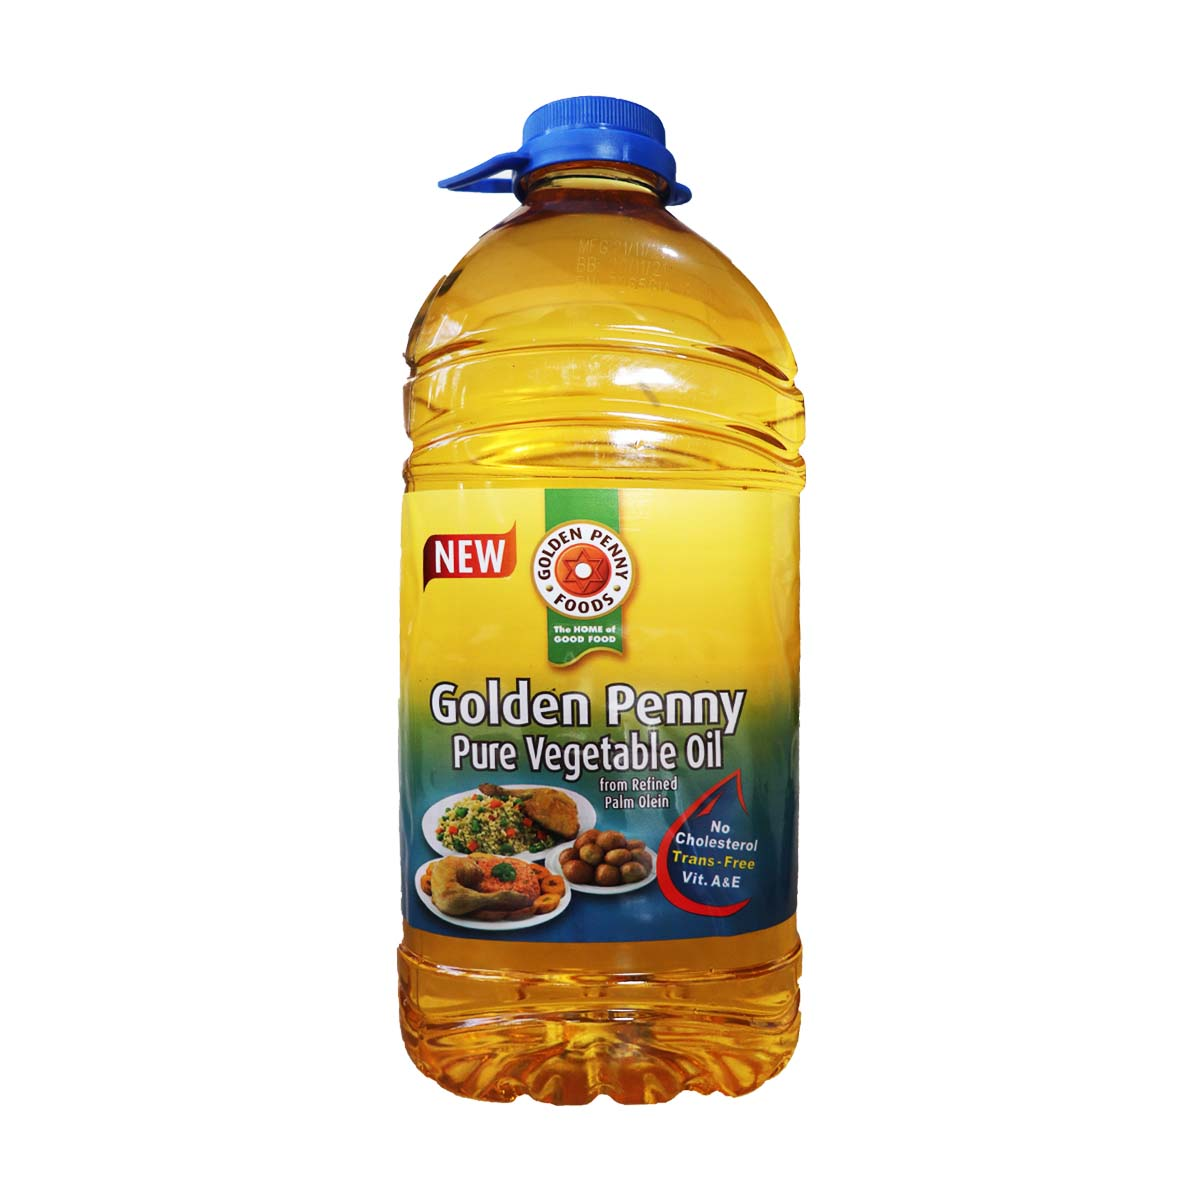 Golden Penny Pure Vegetable Oil 4 Liters